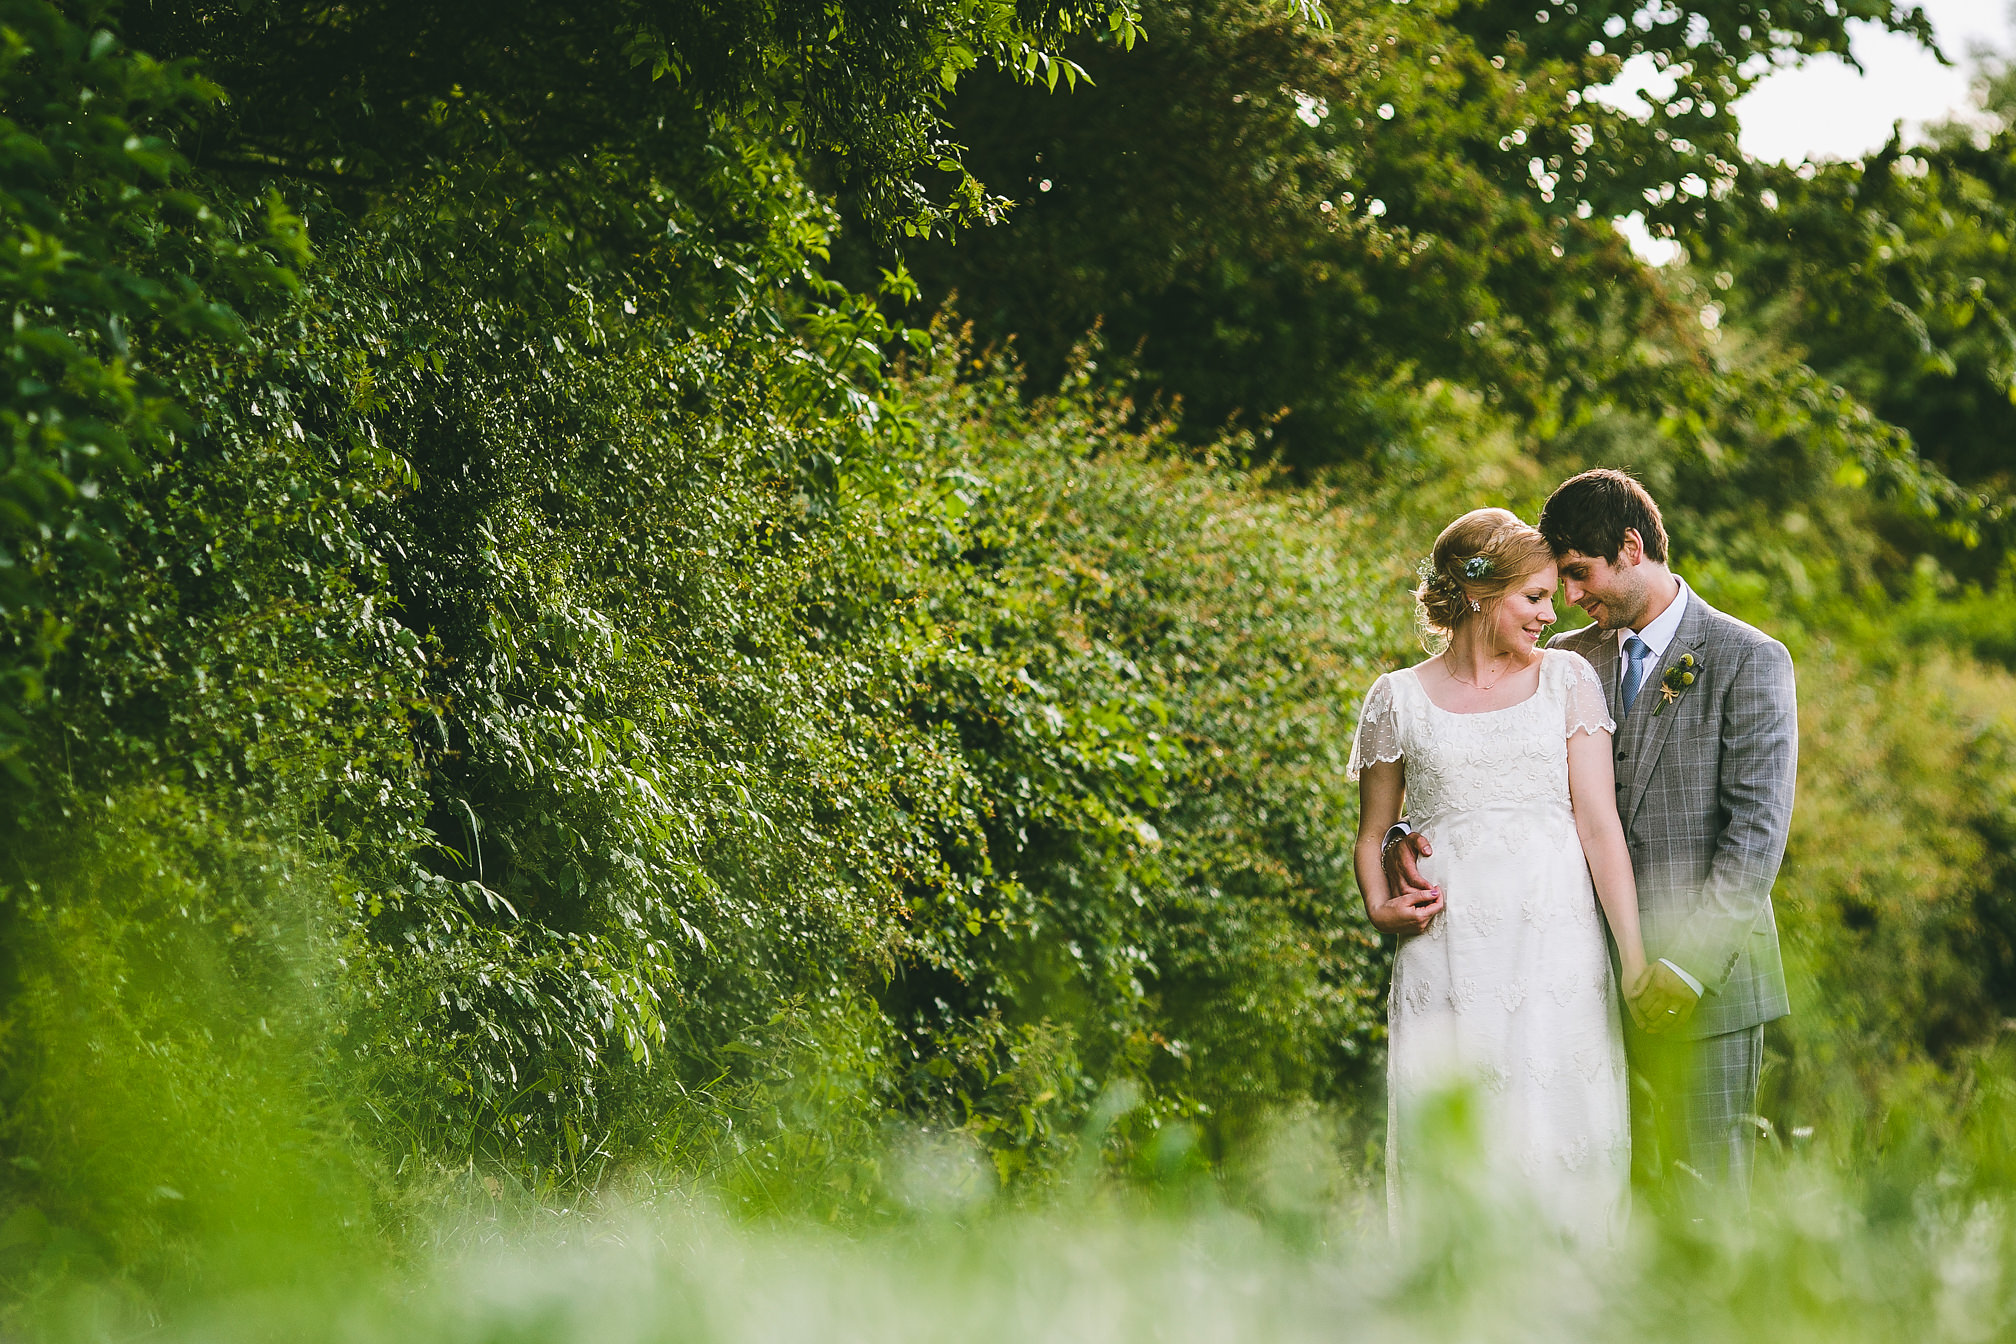 Gorgeous Rural Wedding Portrait